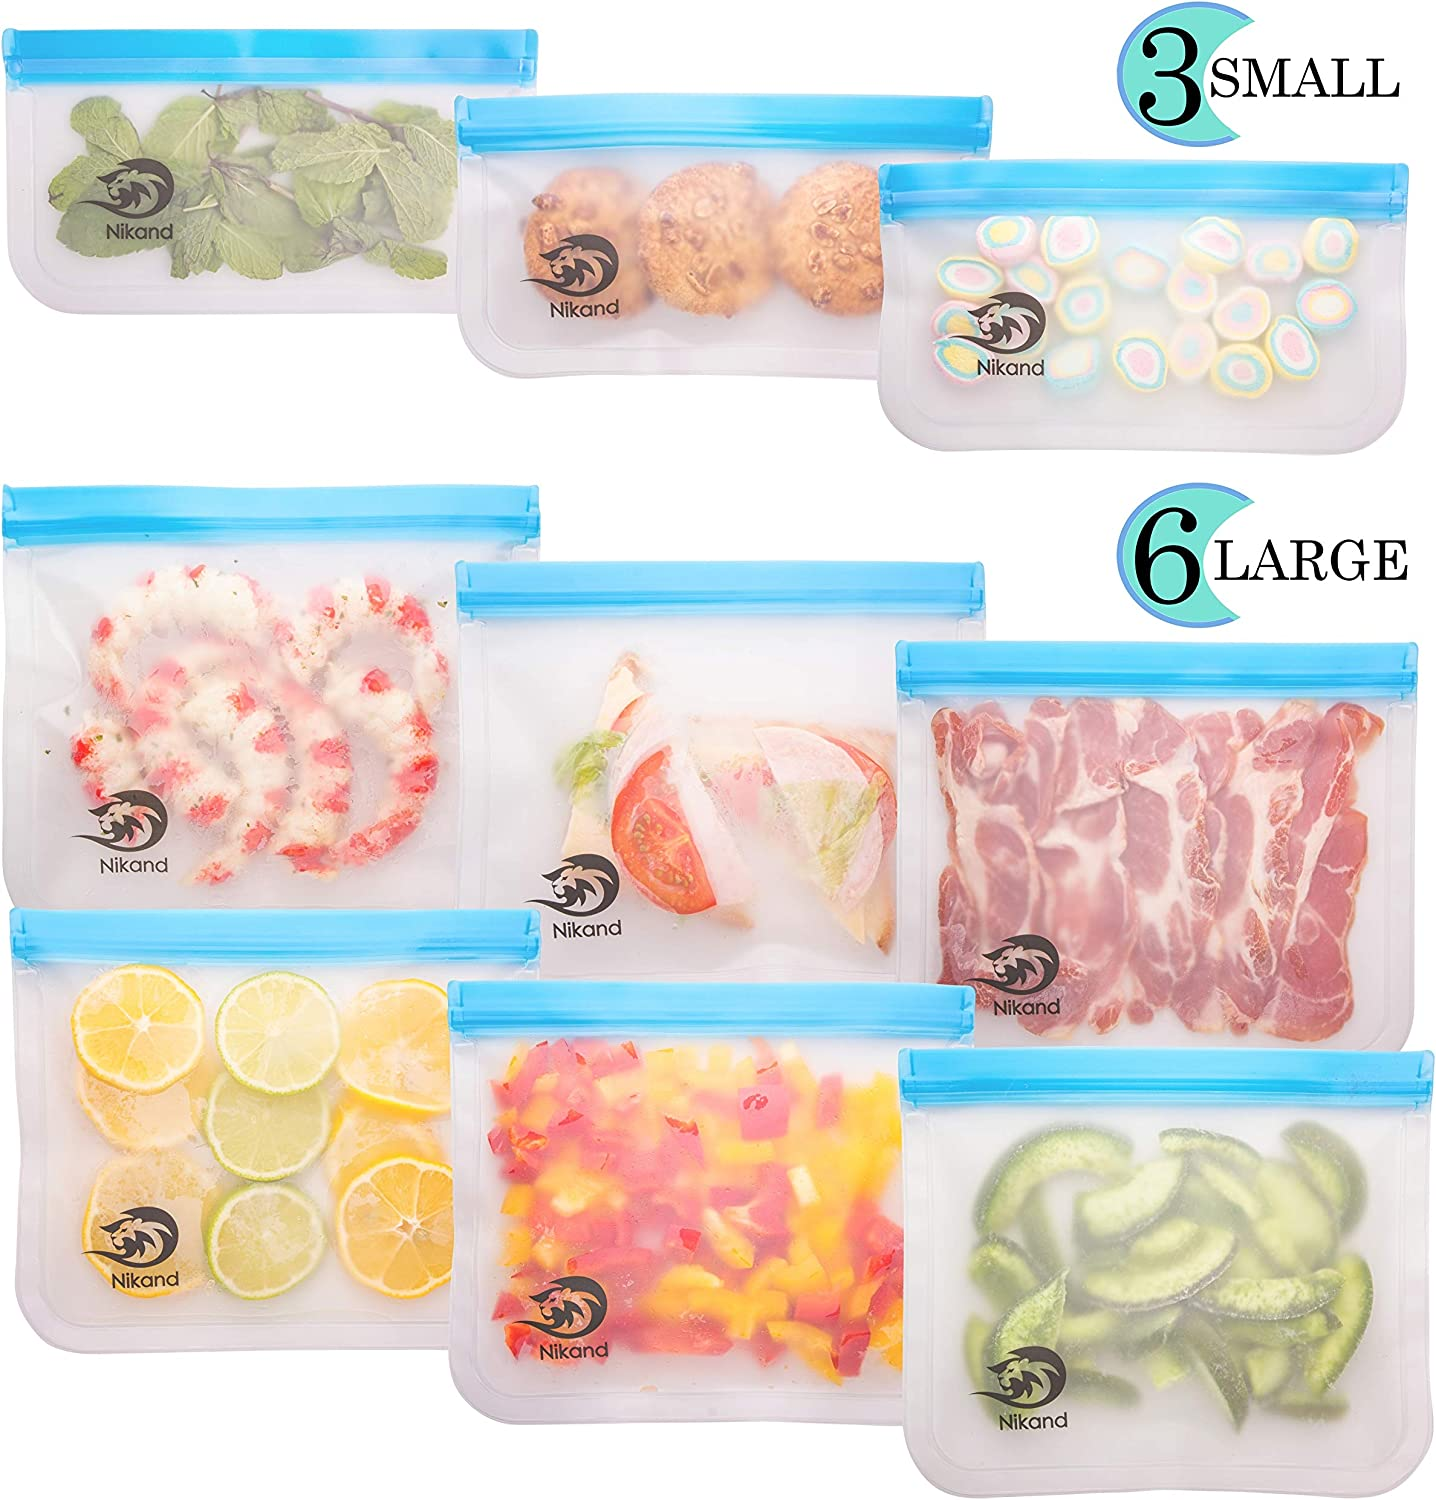 Reusable Storage Bags - 9 Pack BPA Free Freezer Food Container for Sous Vide Liquid Lunch Snack Sandwich Fruits Silicon Bag Zip Lock Size Gallon Large Silicone Plastic Conteiner